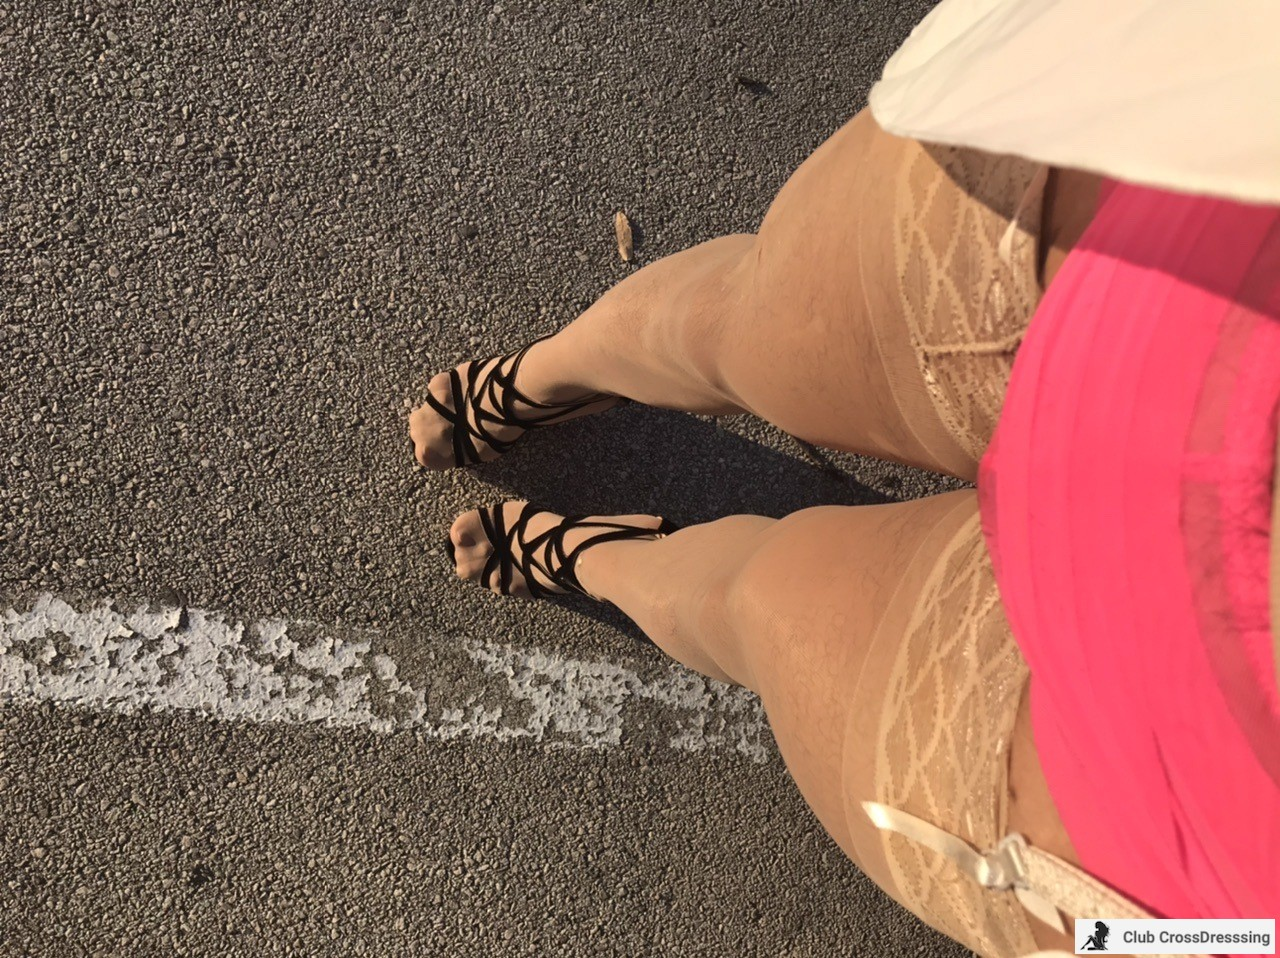 Morning sun makes my stockings look so sexy.